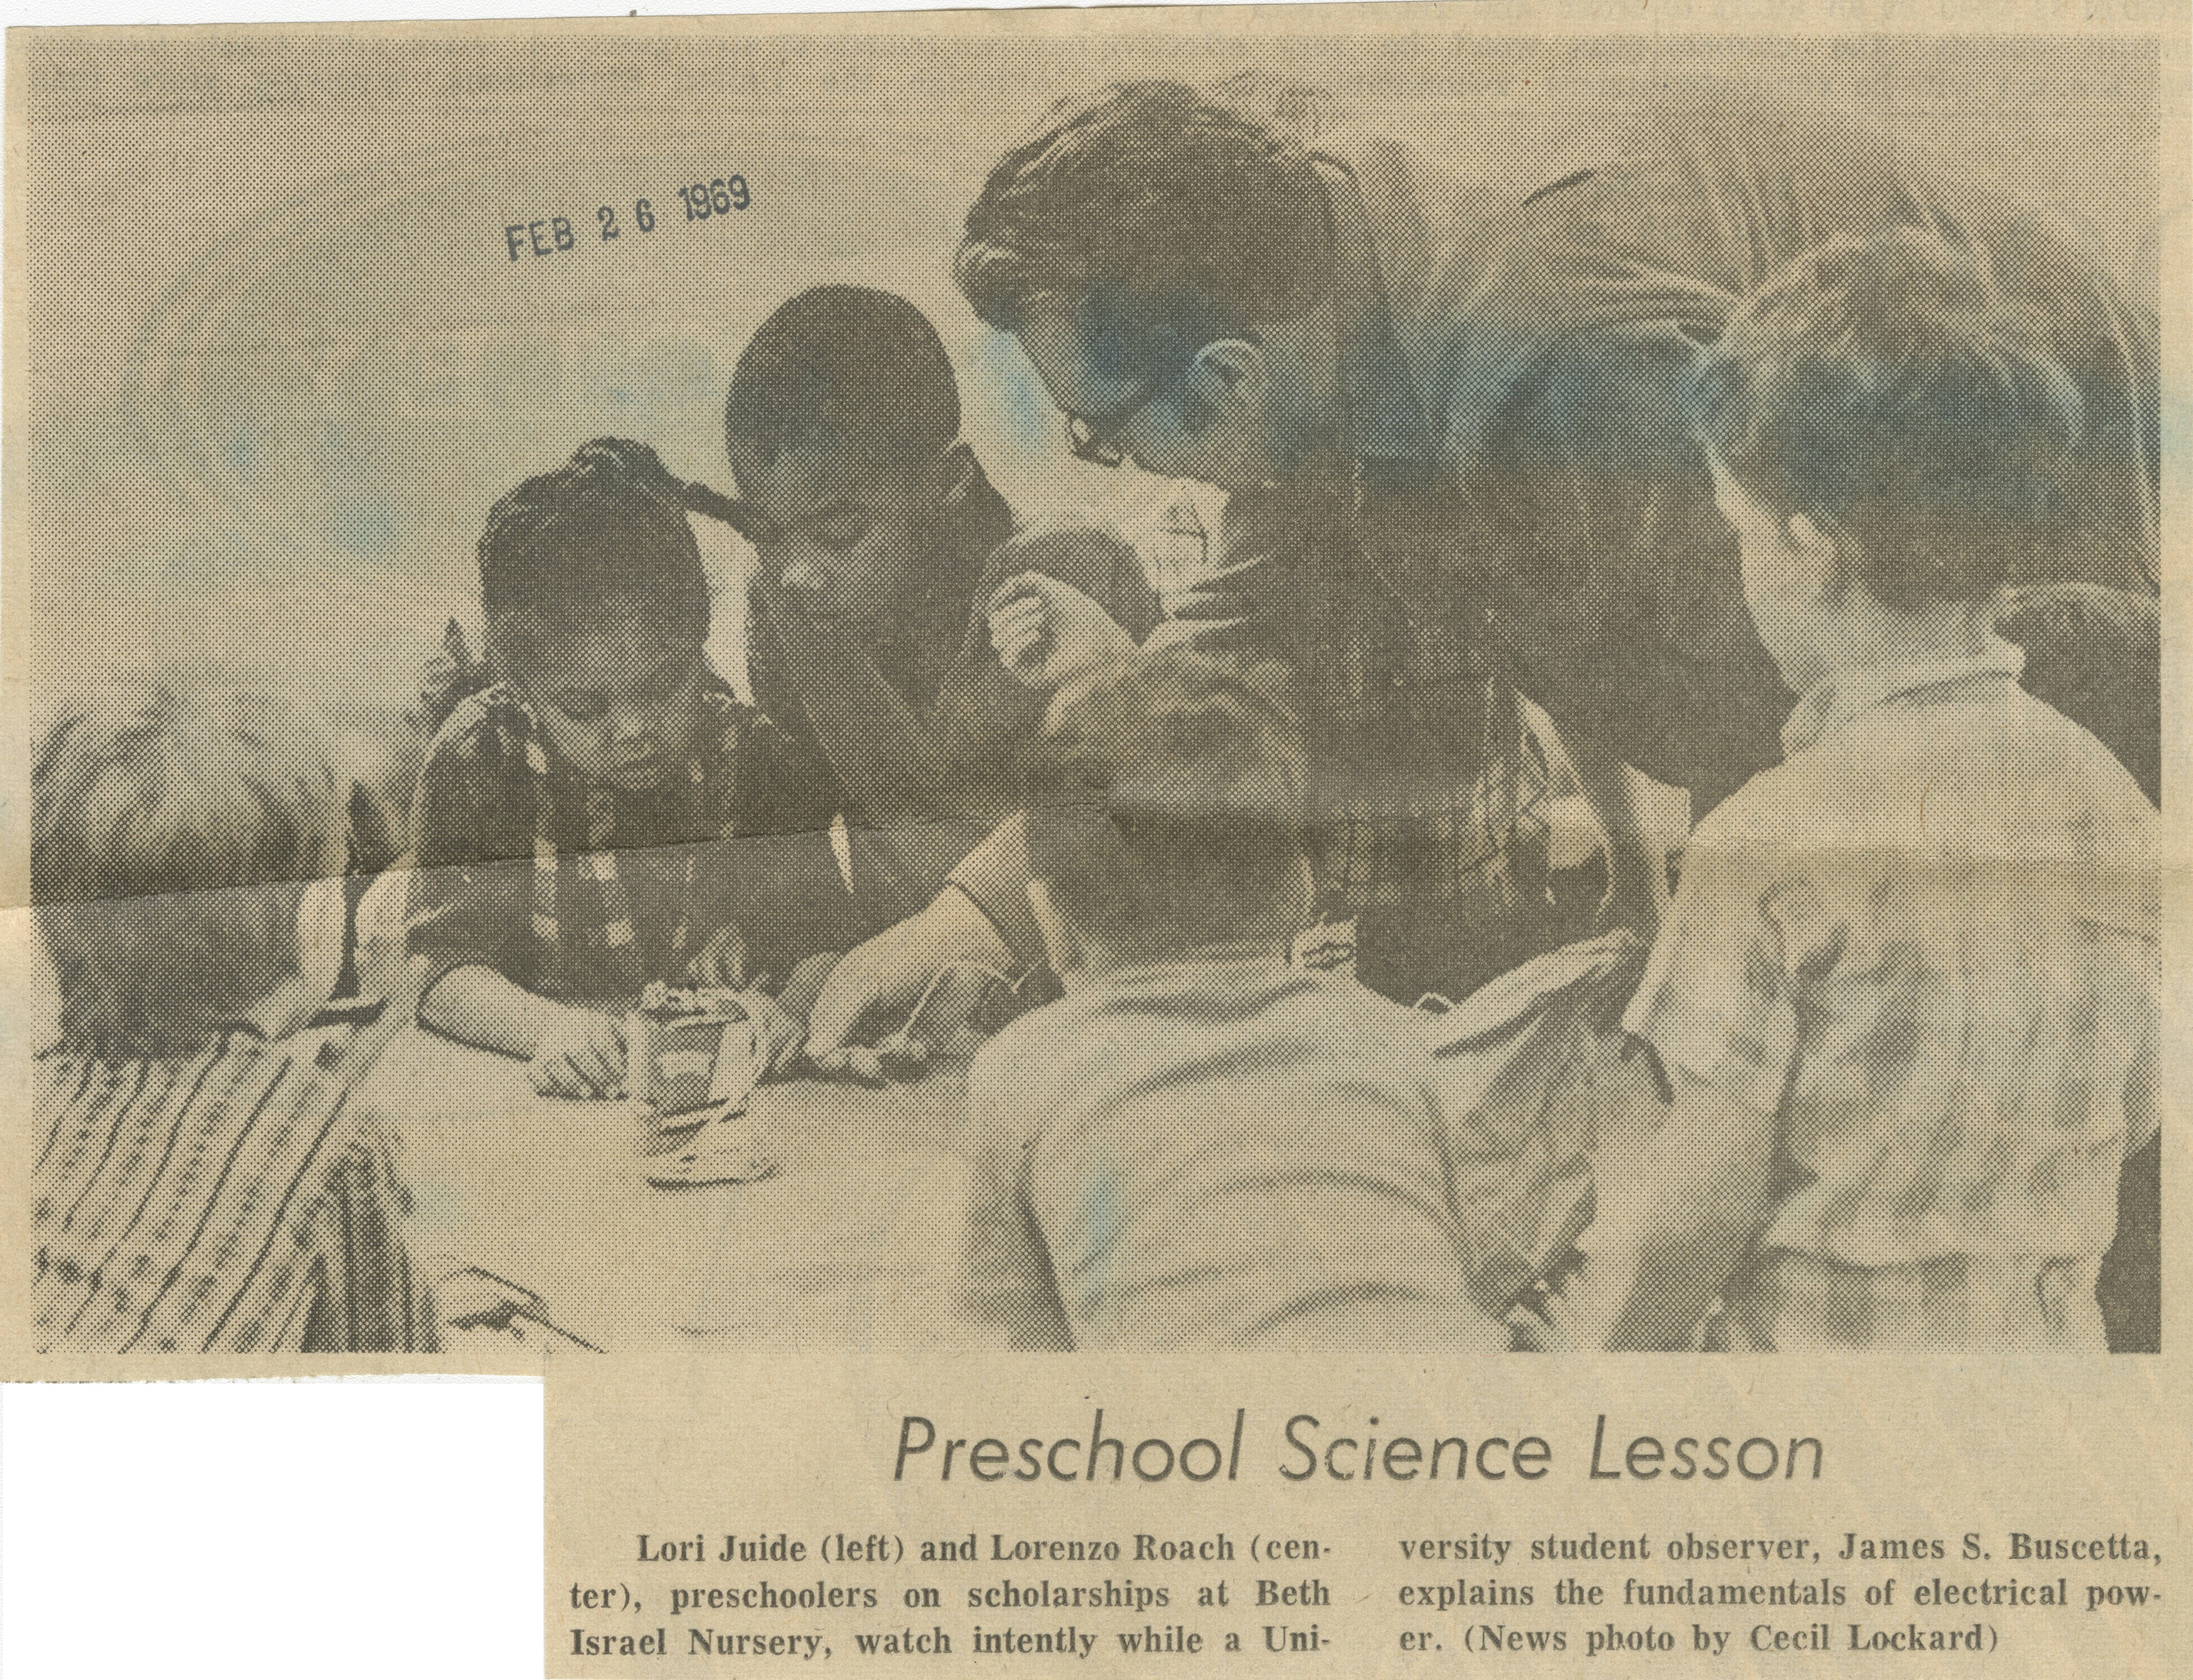 Preschool Science Lesson image